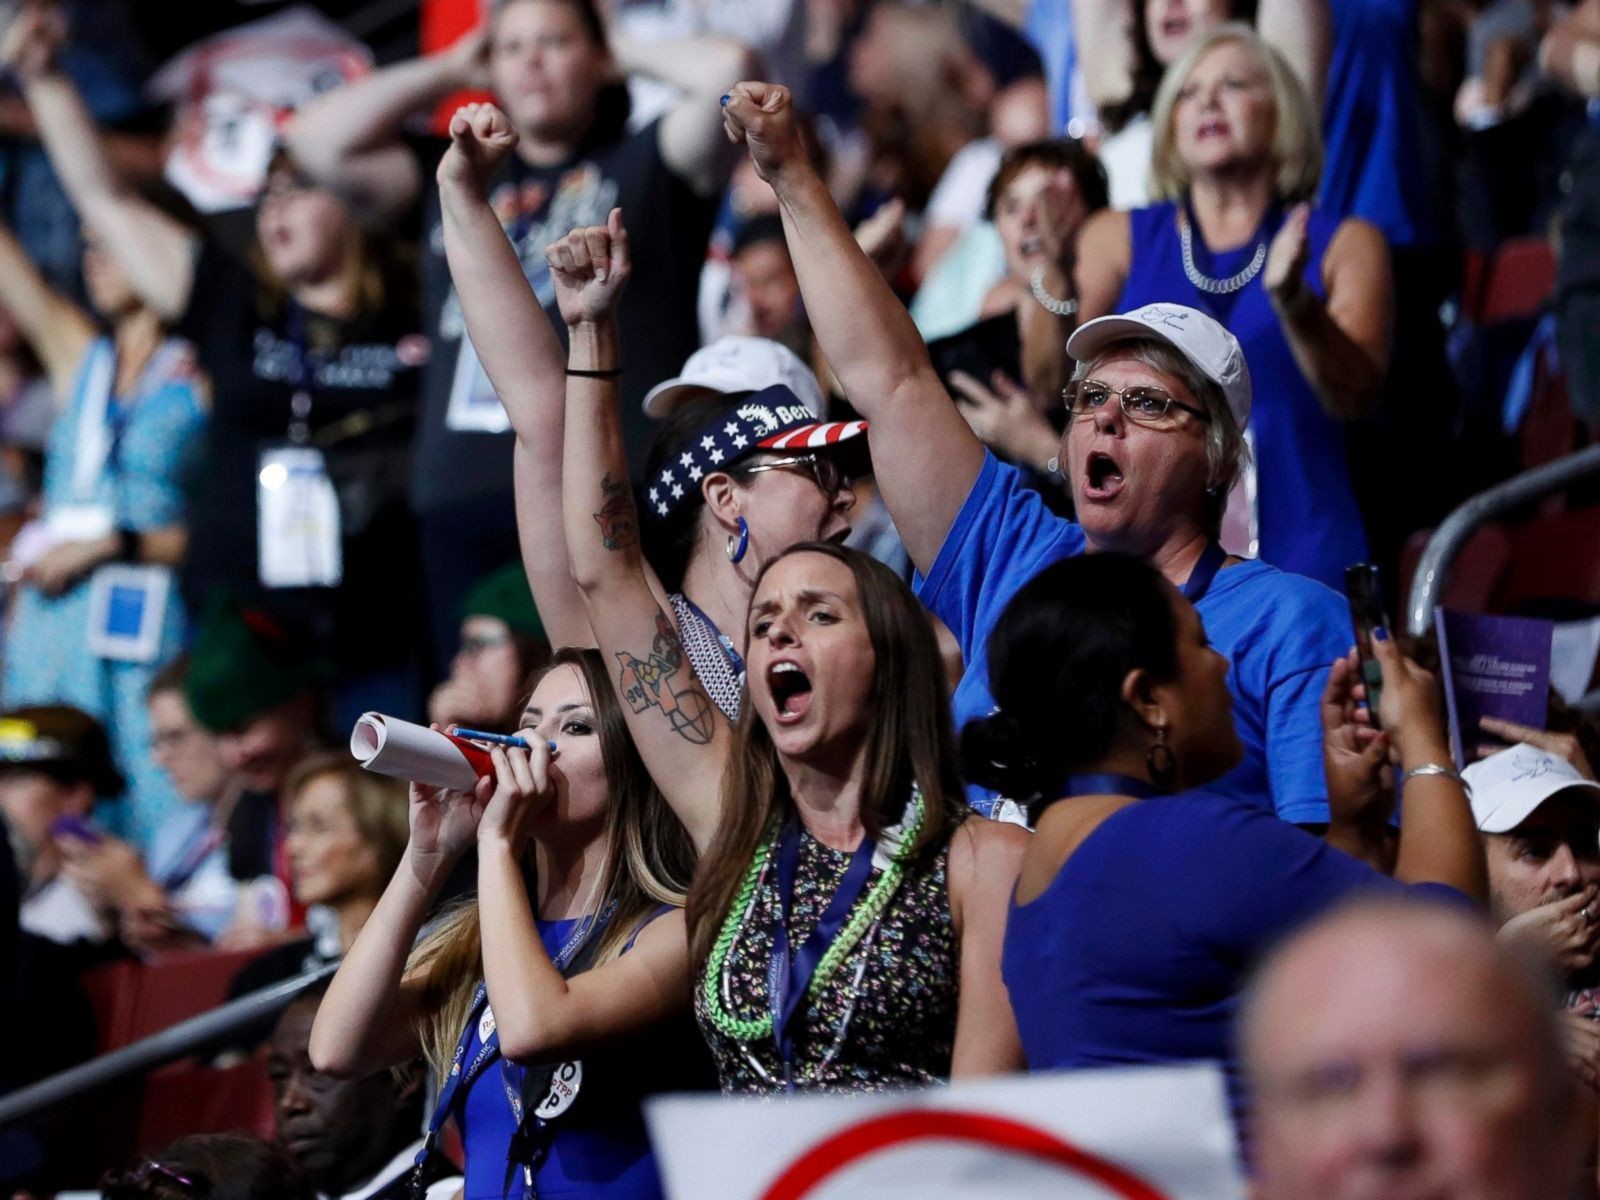 PHOTO: Supporters of Senator Bernie Sanders chant his name as they protest on the floor during the first day of the Democratic National Convention in Philadelphia,  July 25, 2016.